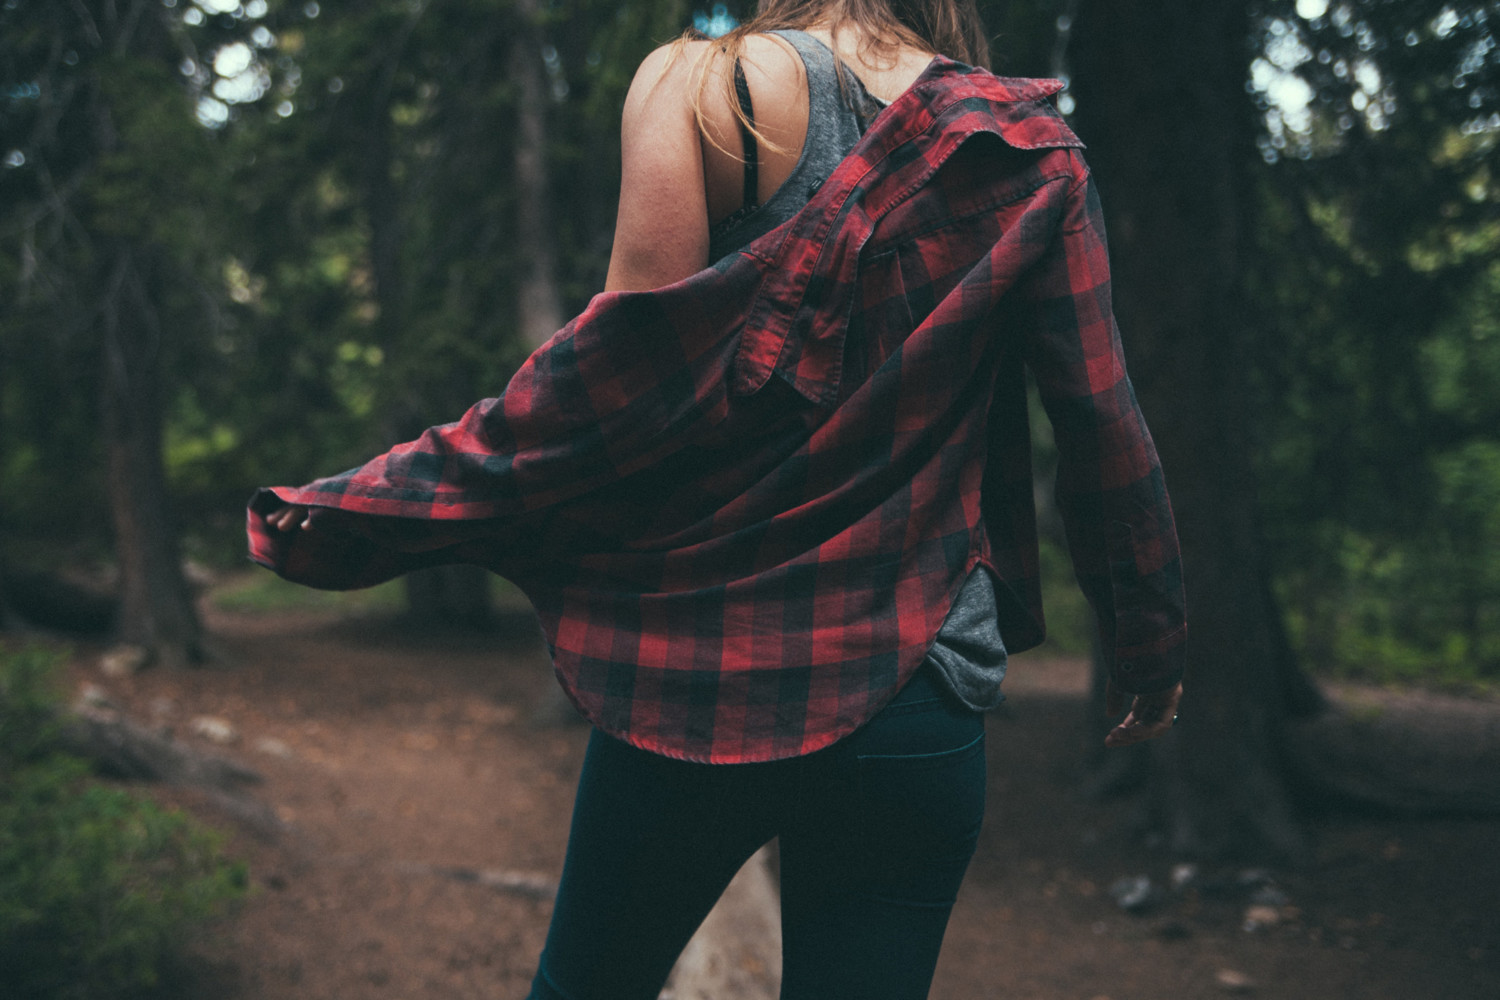 A girl with plaid shirt in jungle.